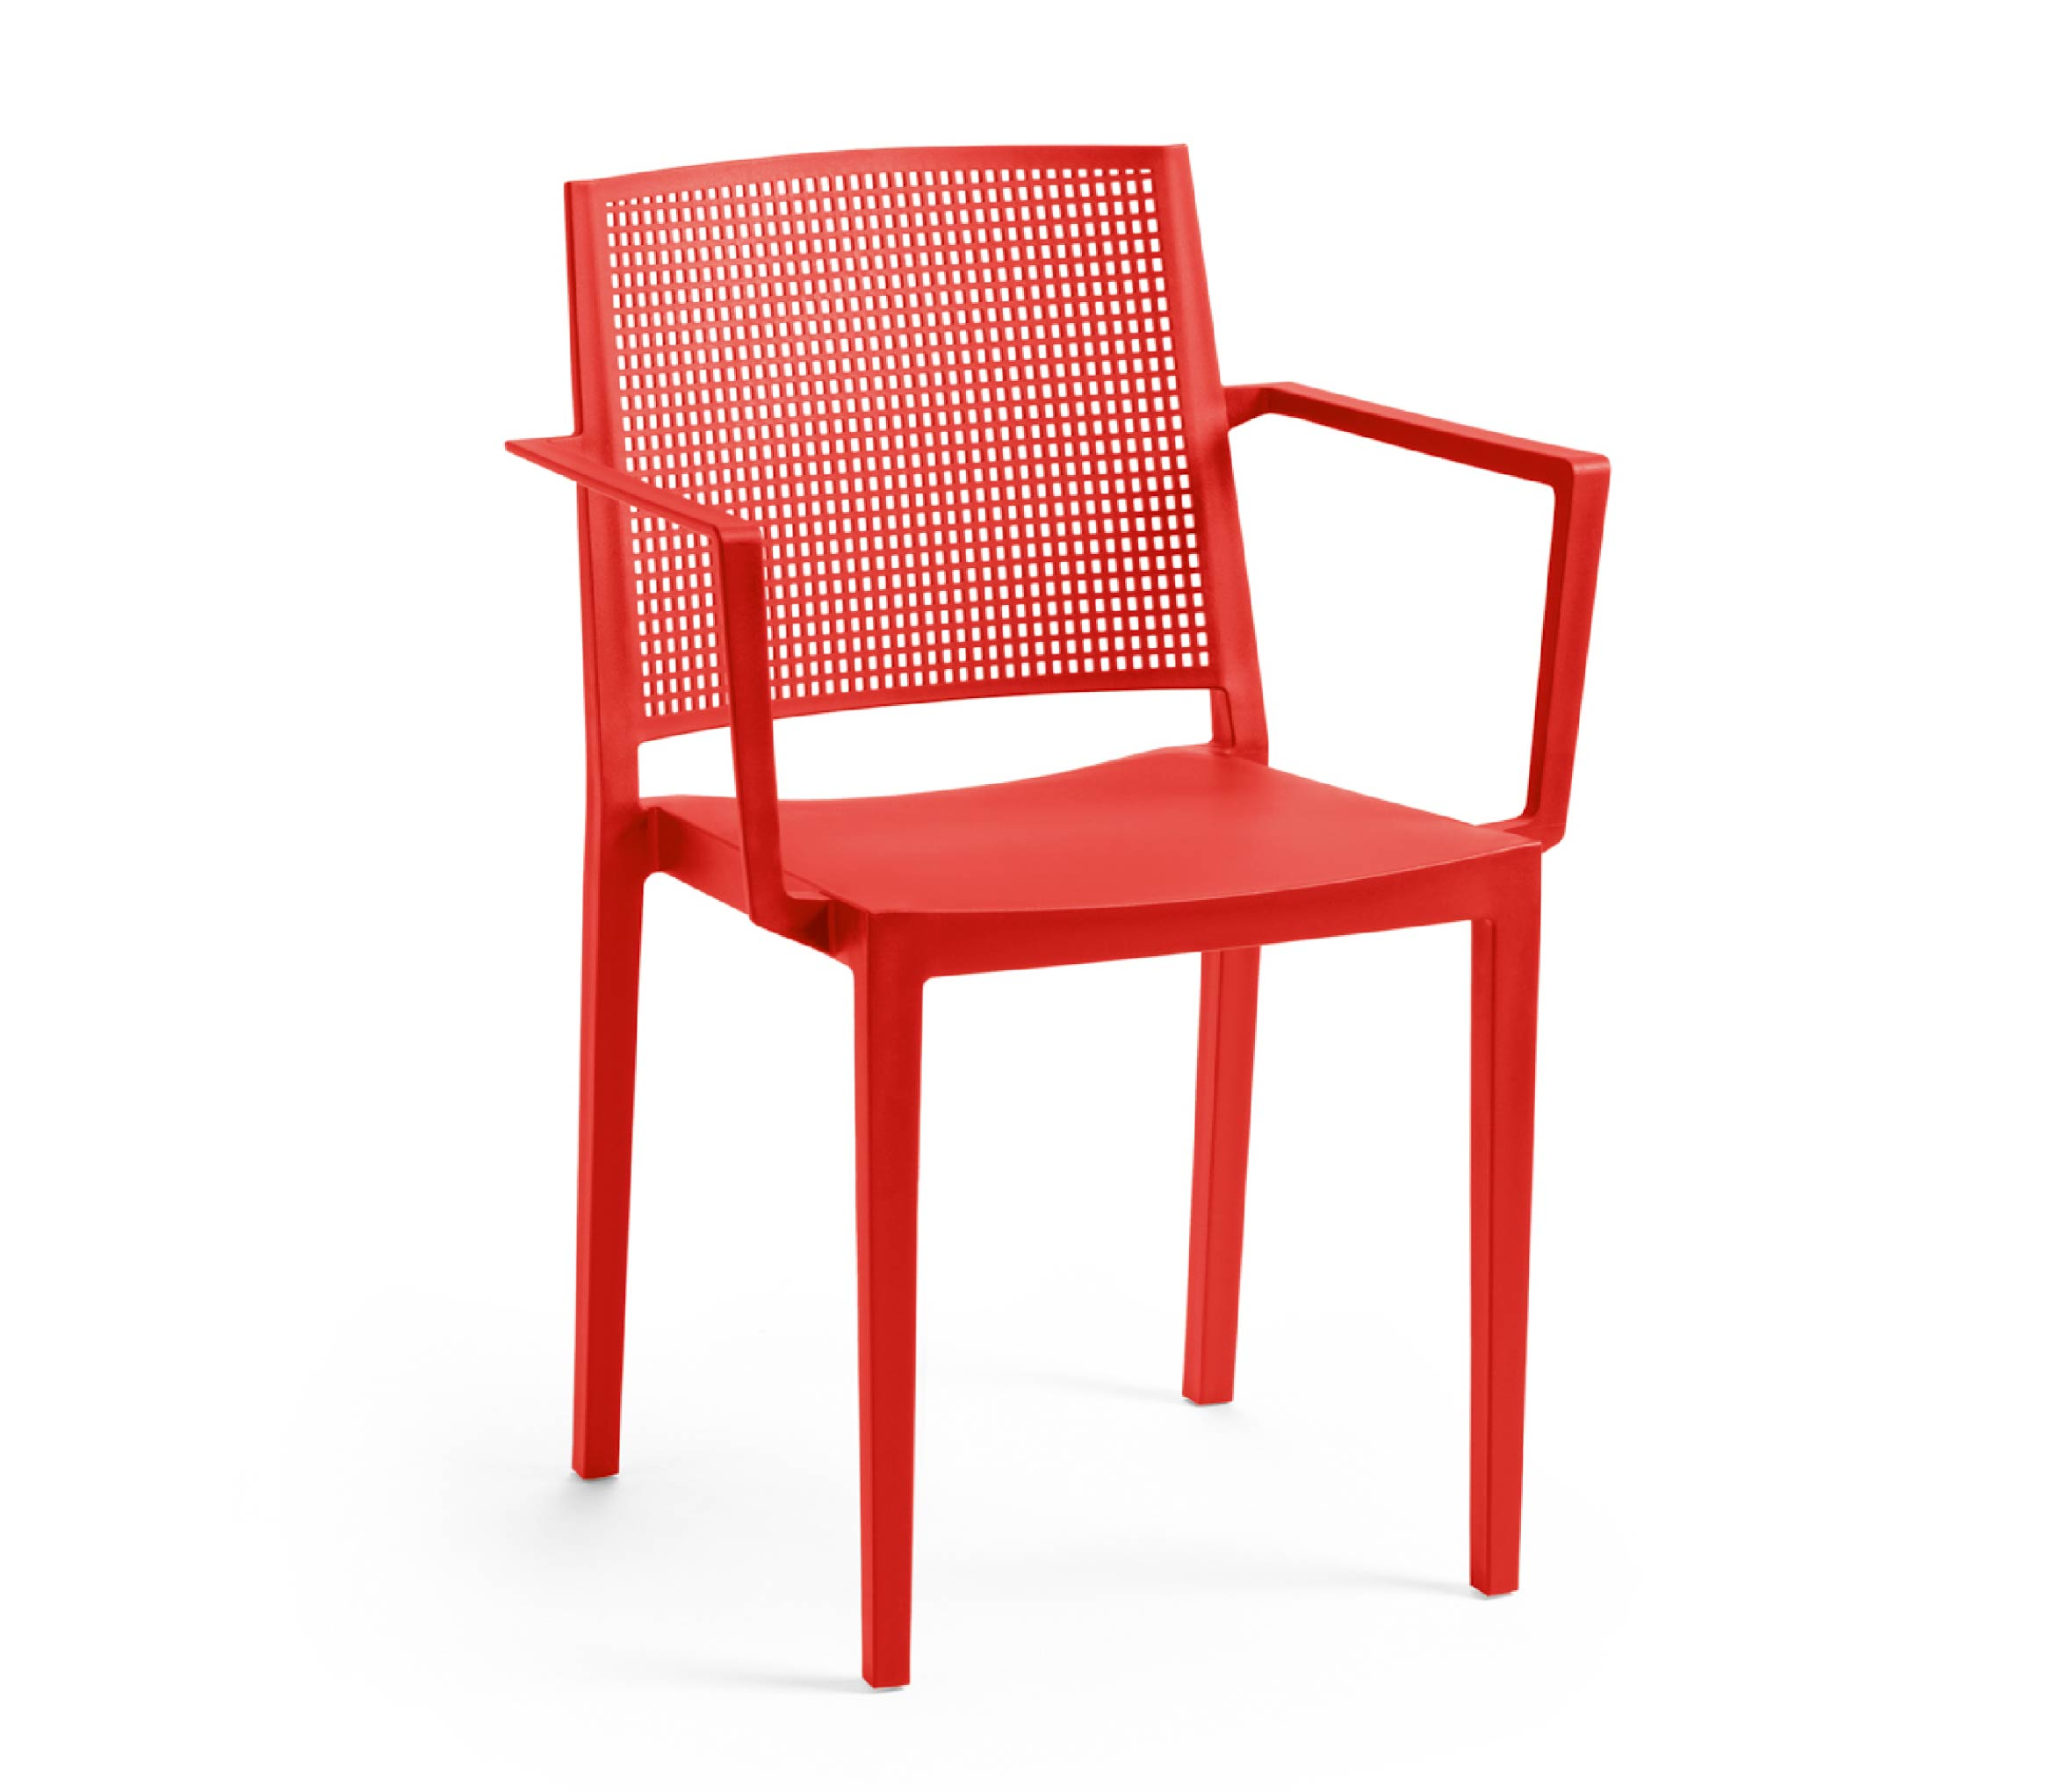 3 - TENSAI_FURNITURE_GRID_ARMCHAIR_plastic_chair_cherry_red_color_white_background_405_001